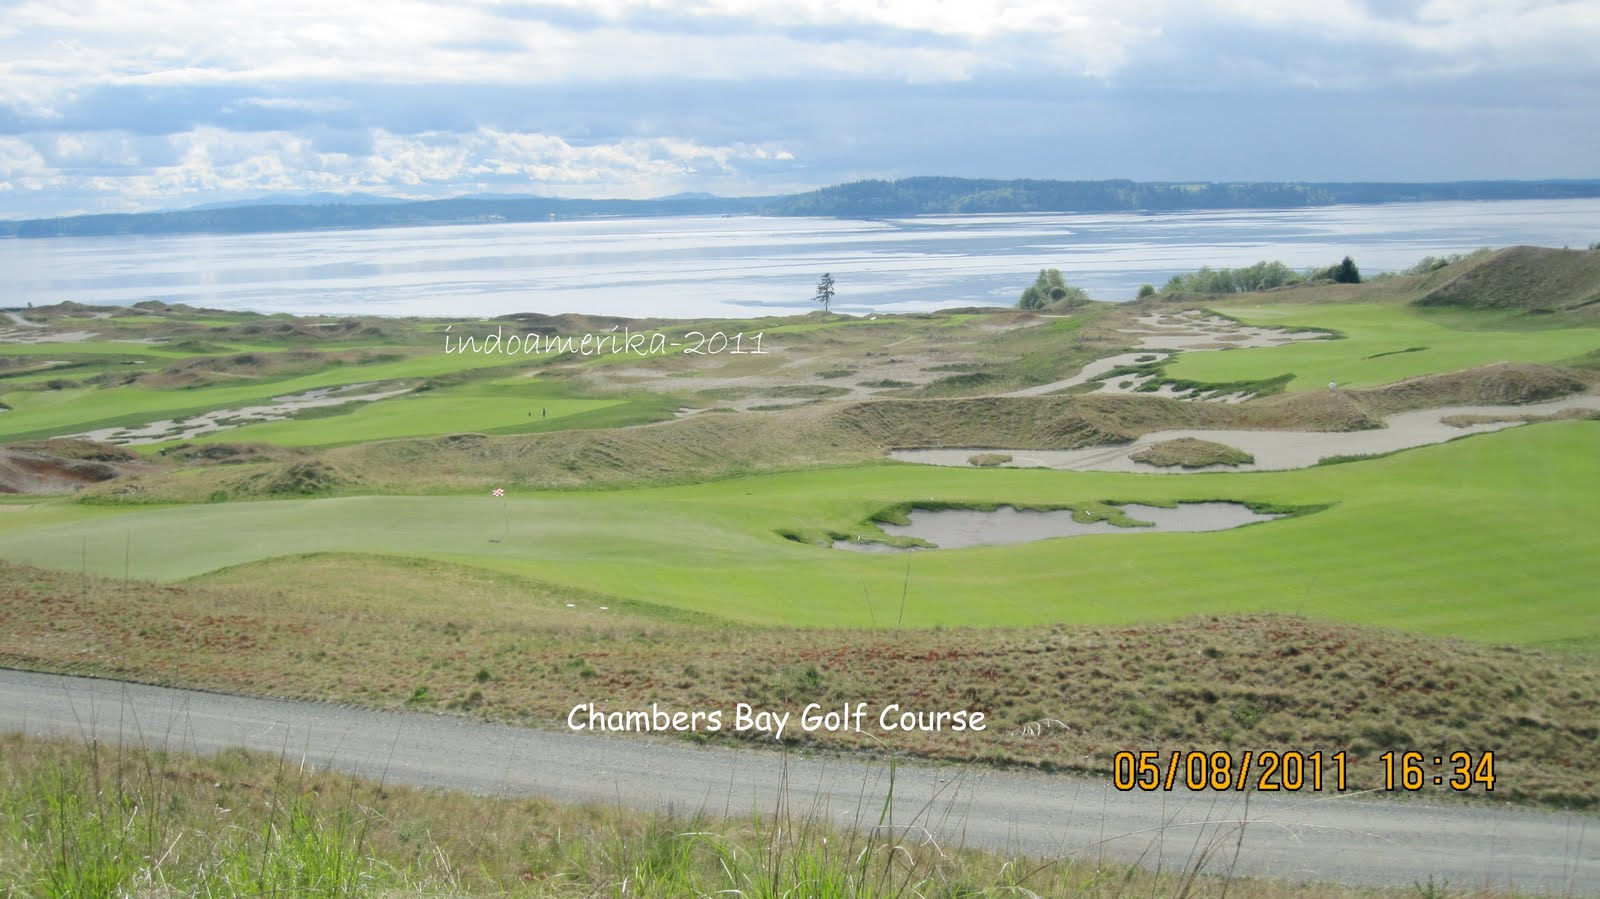 indo amerika chambers bay golf course